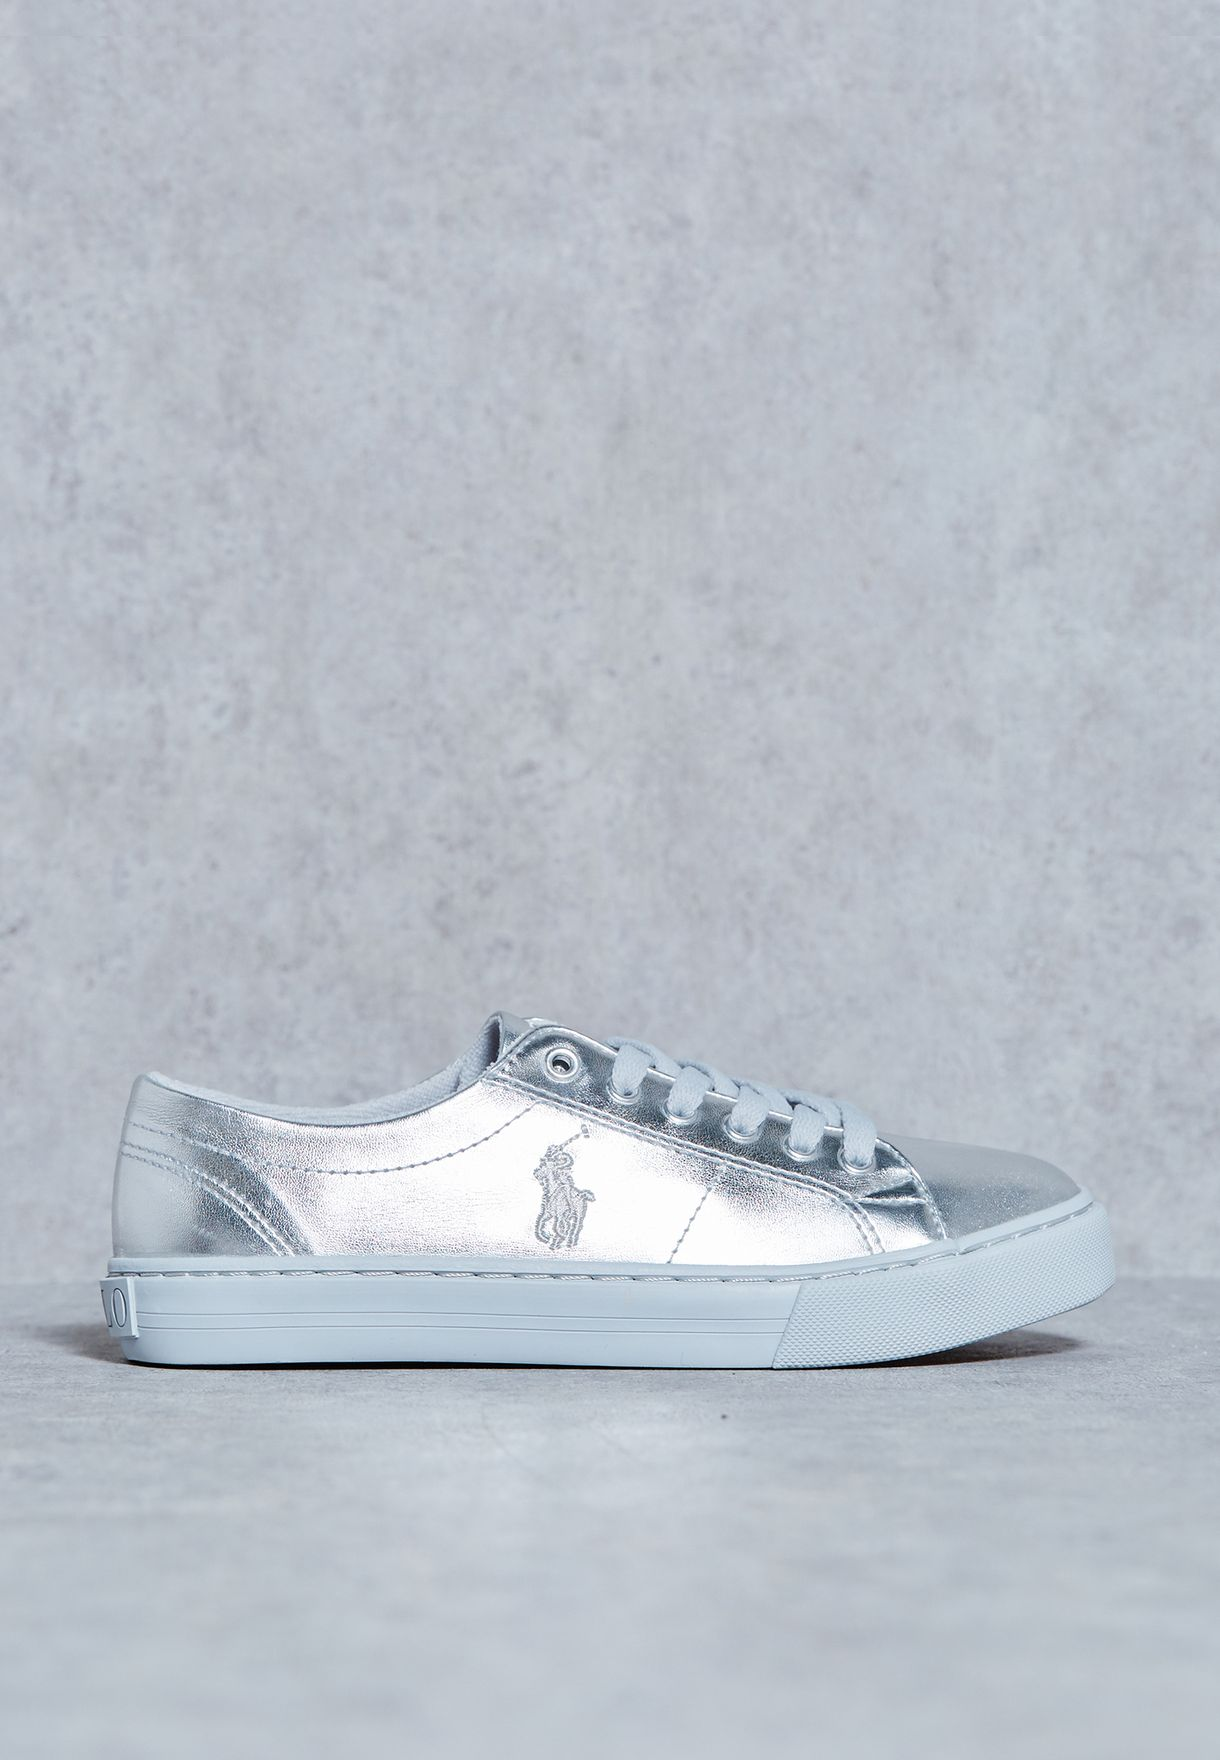 Polo In Lauren Oman Silver Youth For Scholar J993616 Kids Ralph Shop tohdCQsrxB